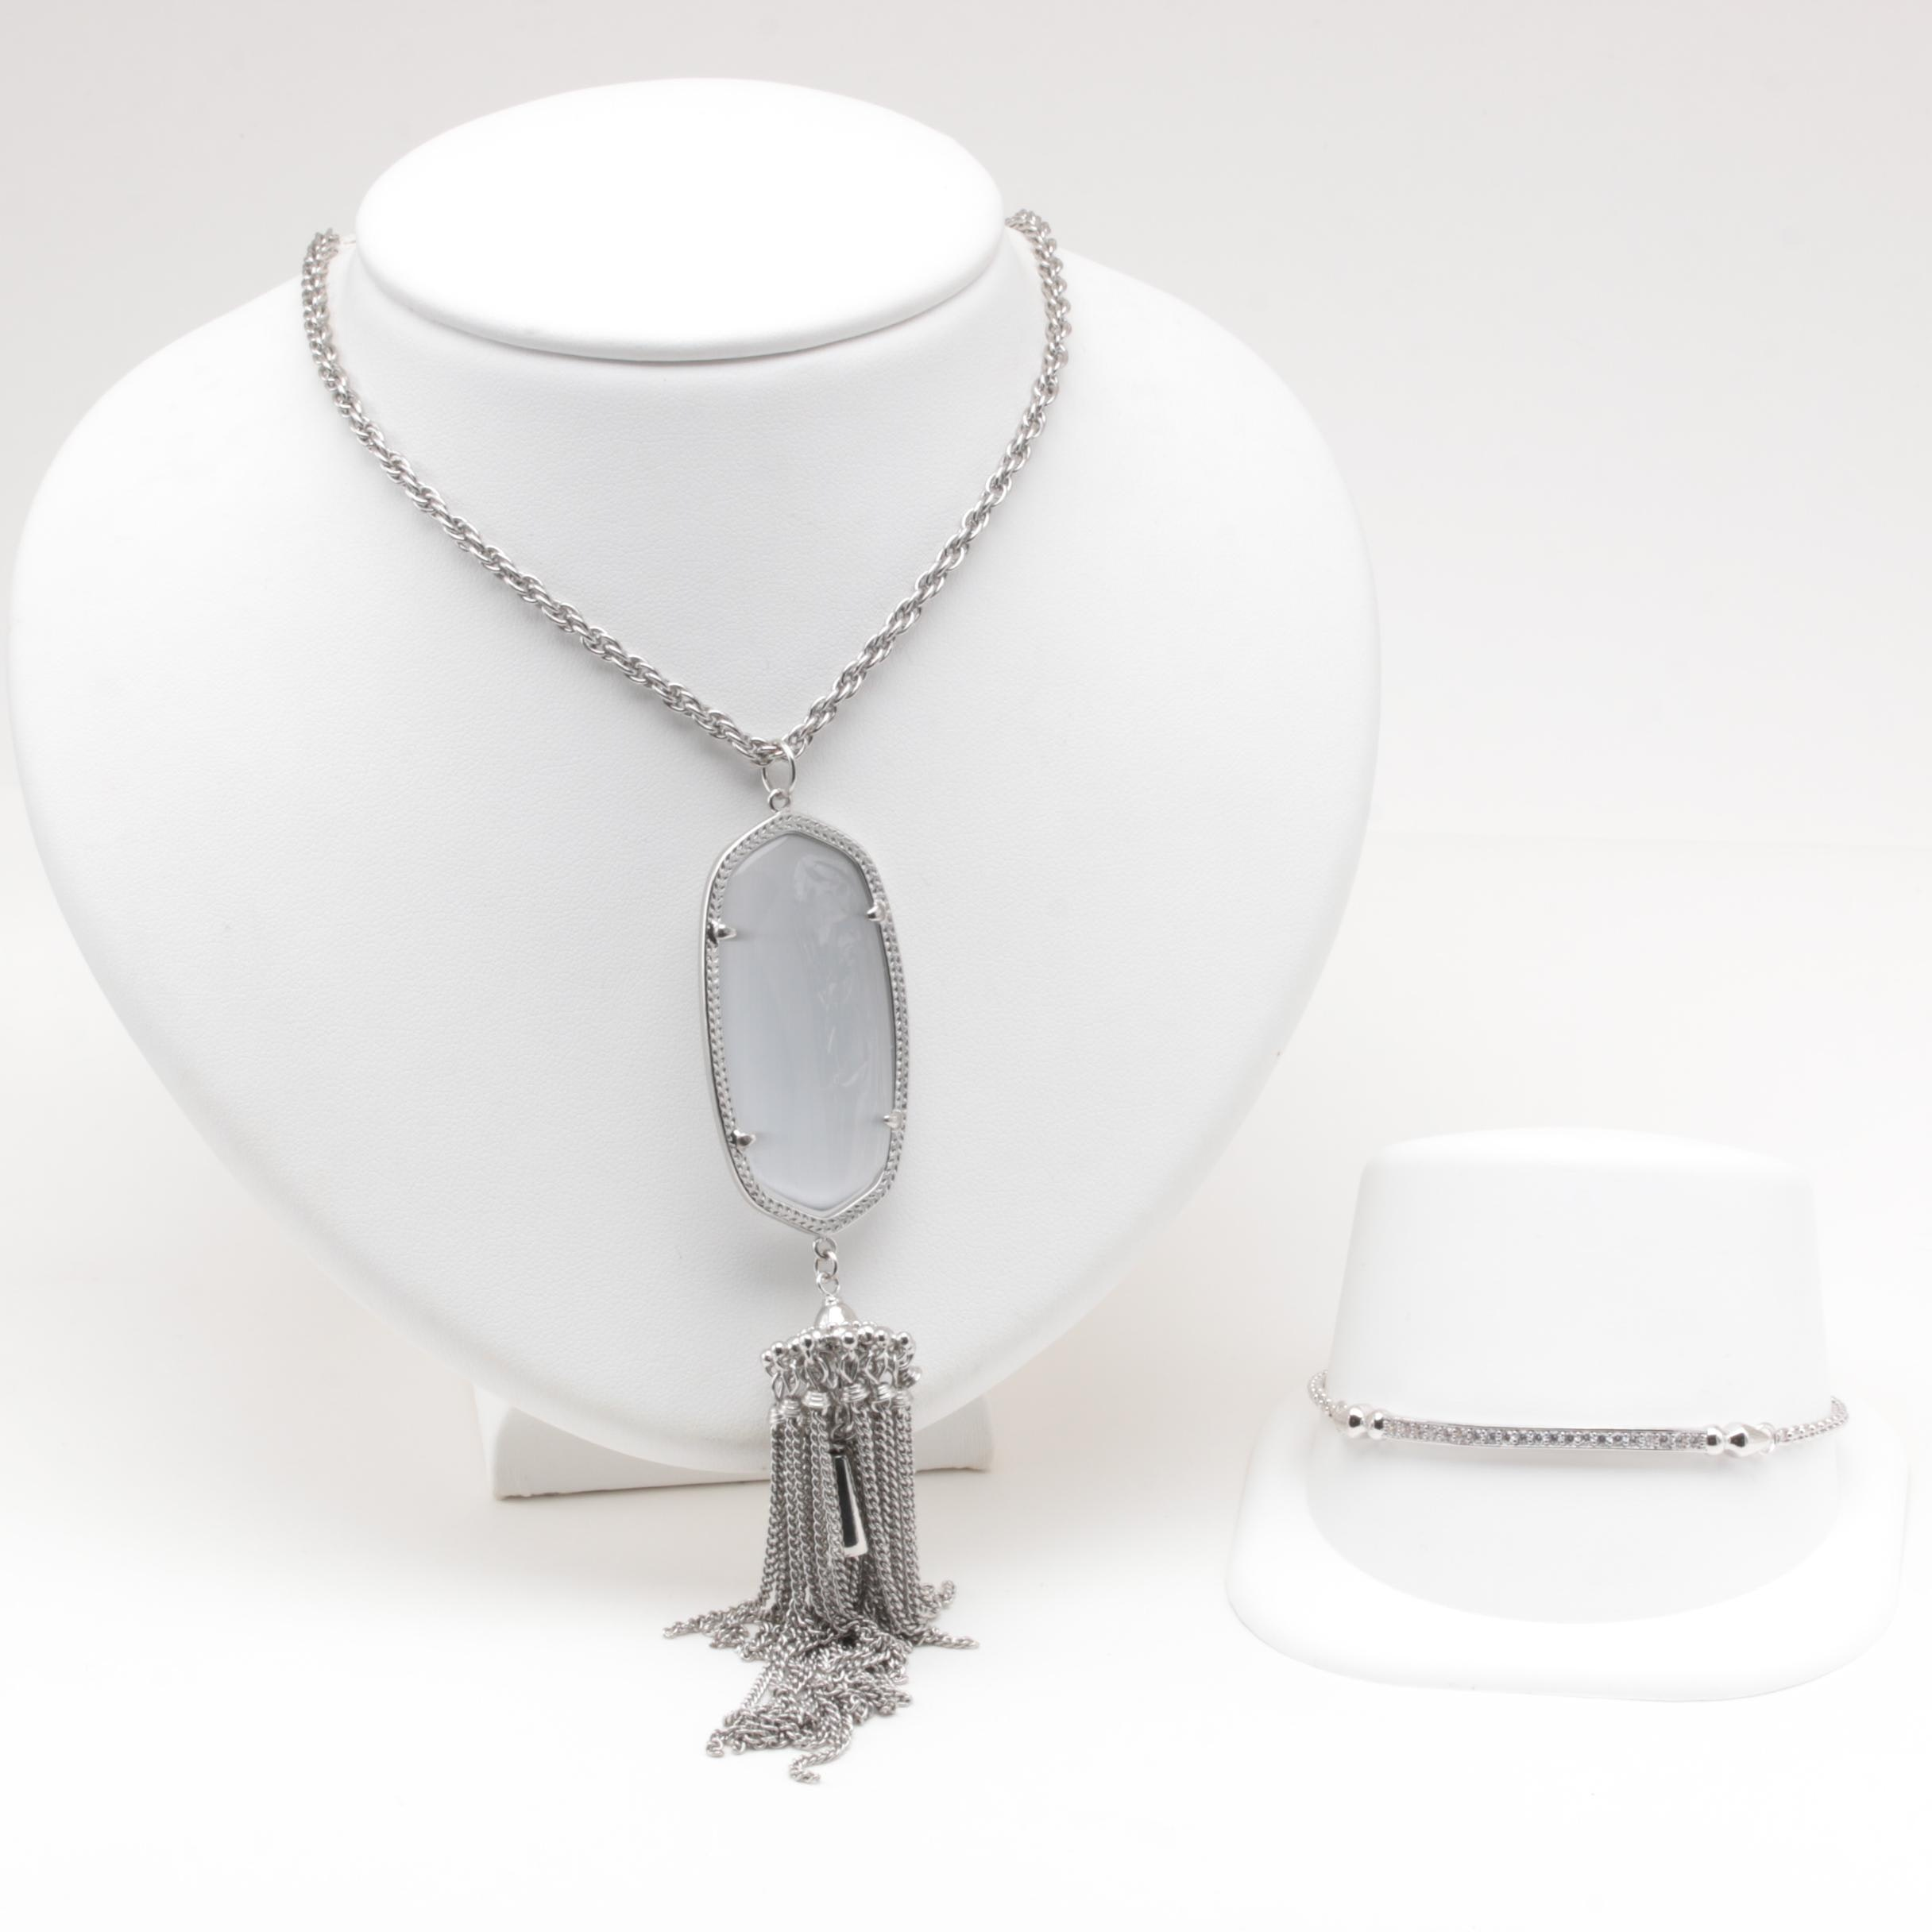 Kendra Scott Glass and Cubic Zirconia Necklace and Bracelet